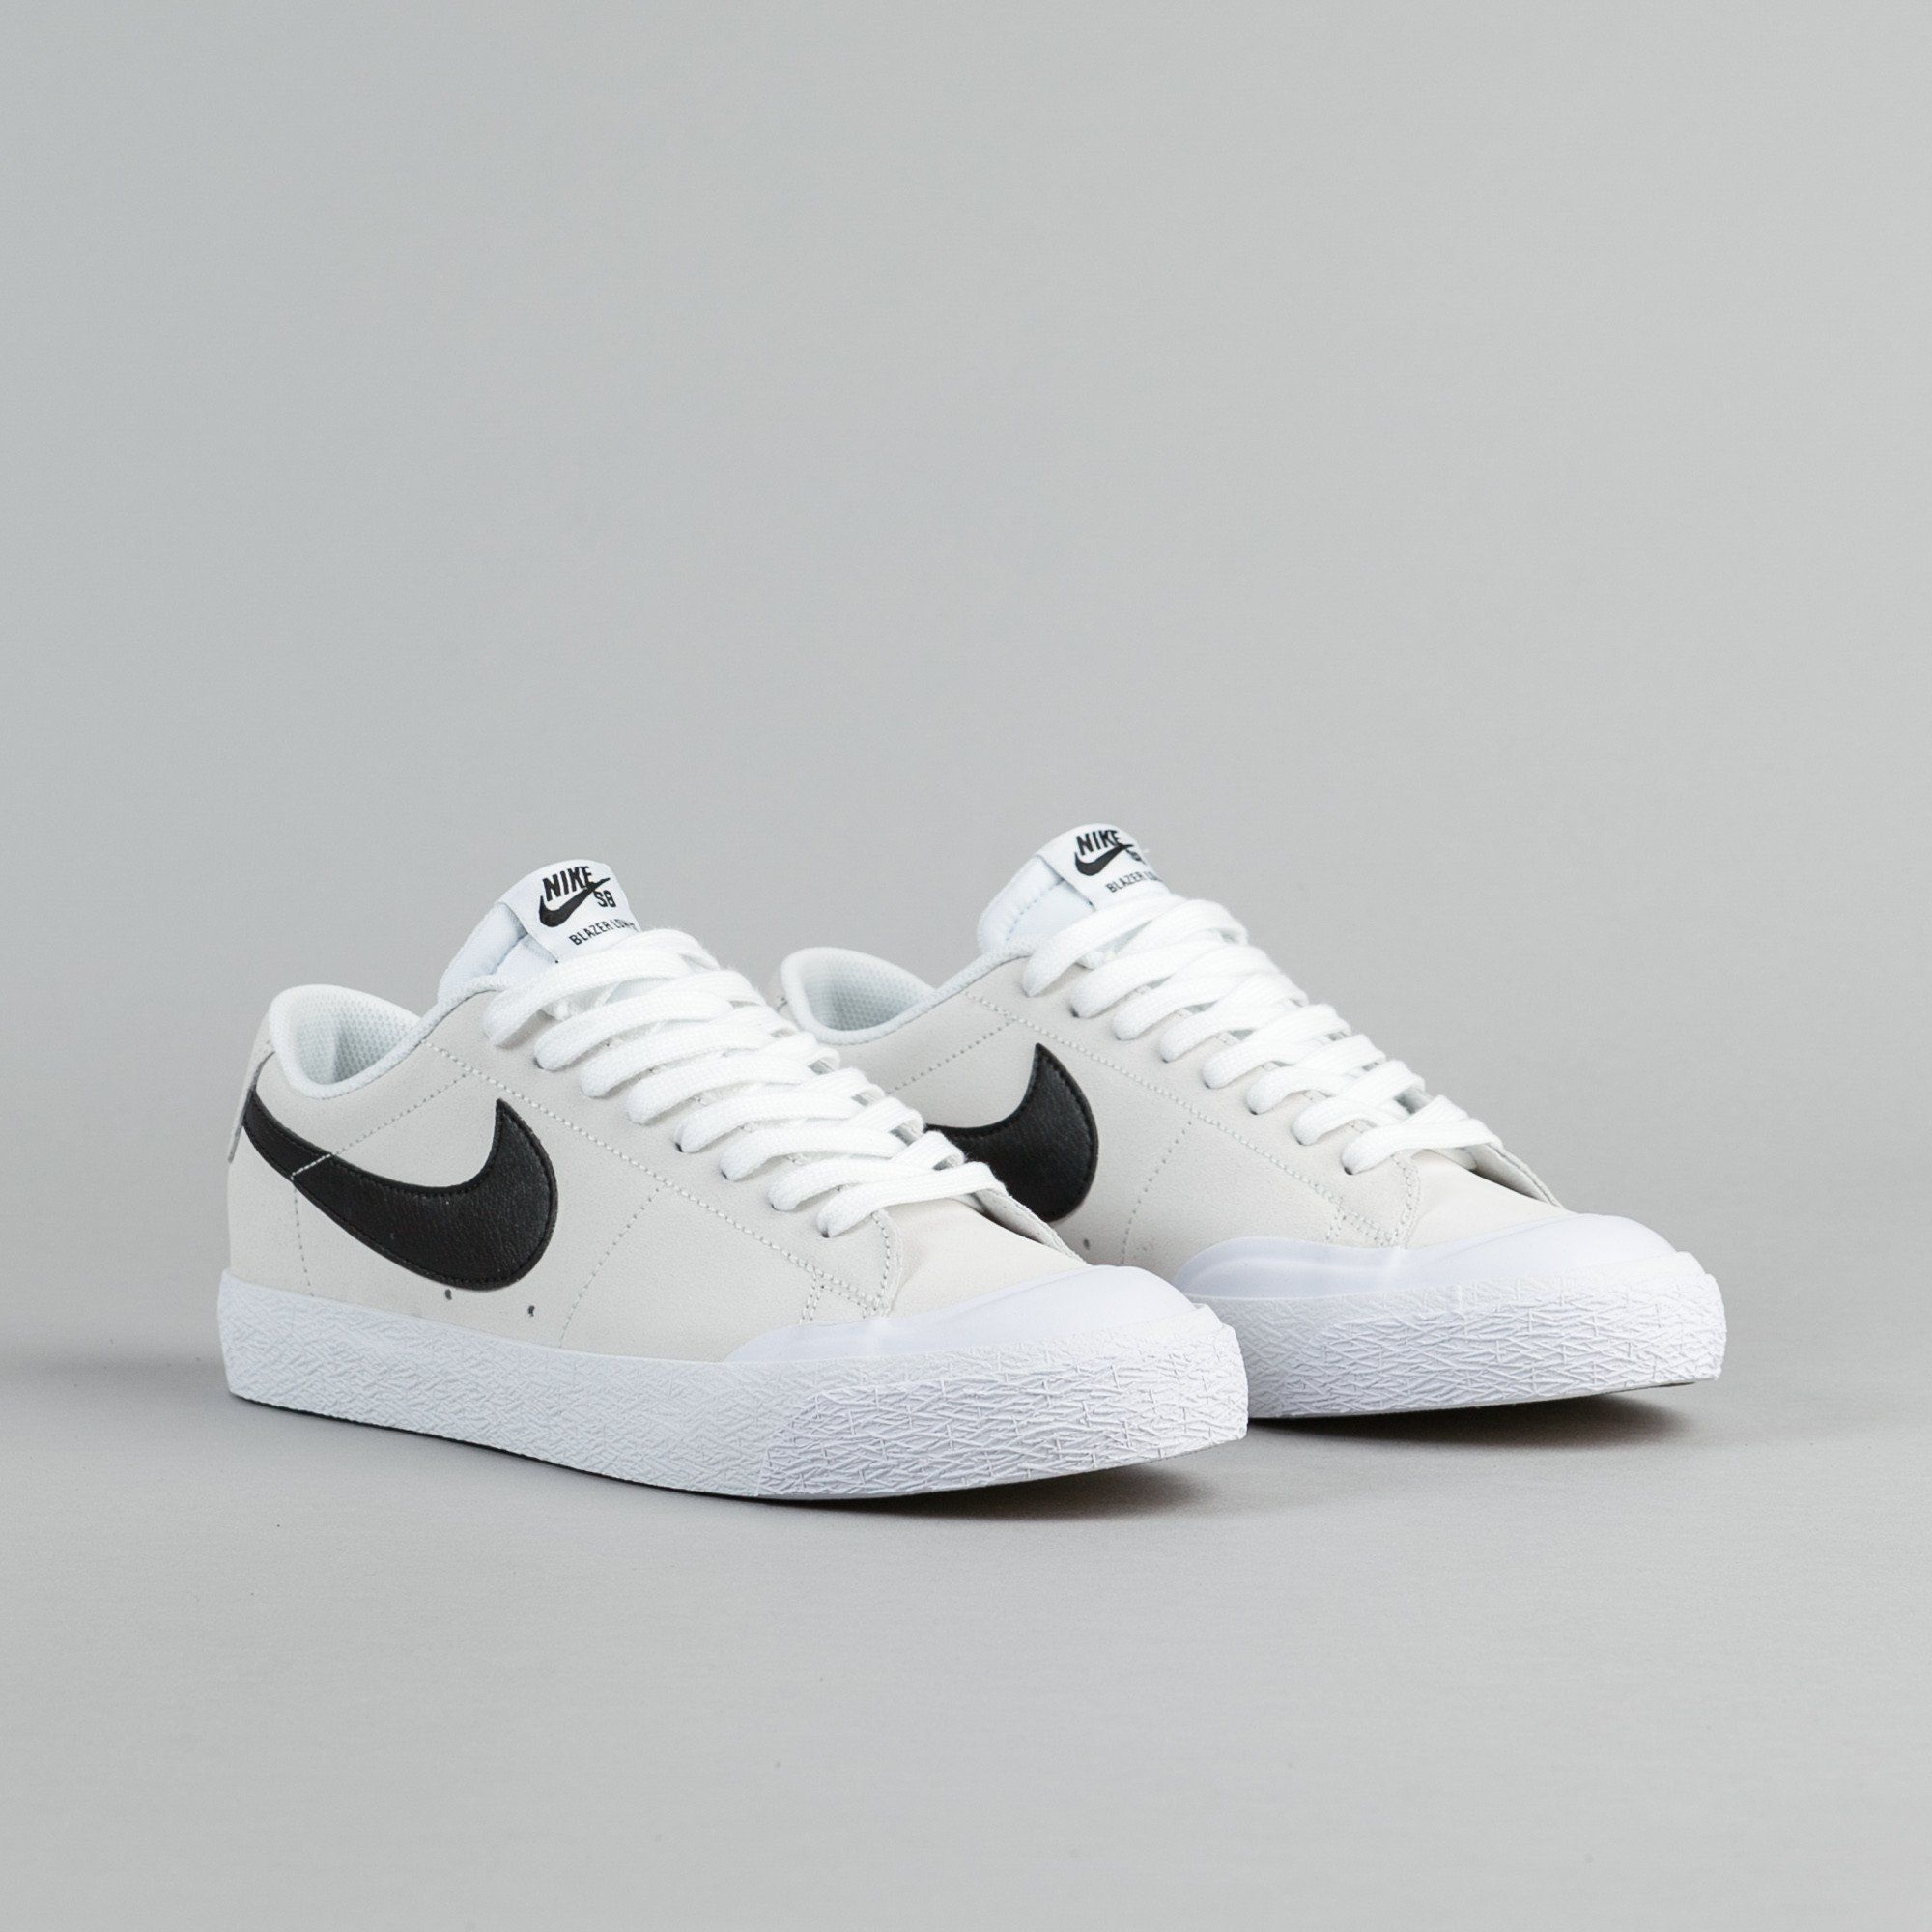 9ad4934b99b Nike SB Blazer Low XT Shoes - Summit White   Black - White - Gum Light Brown